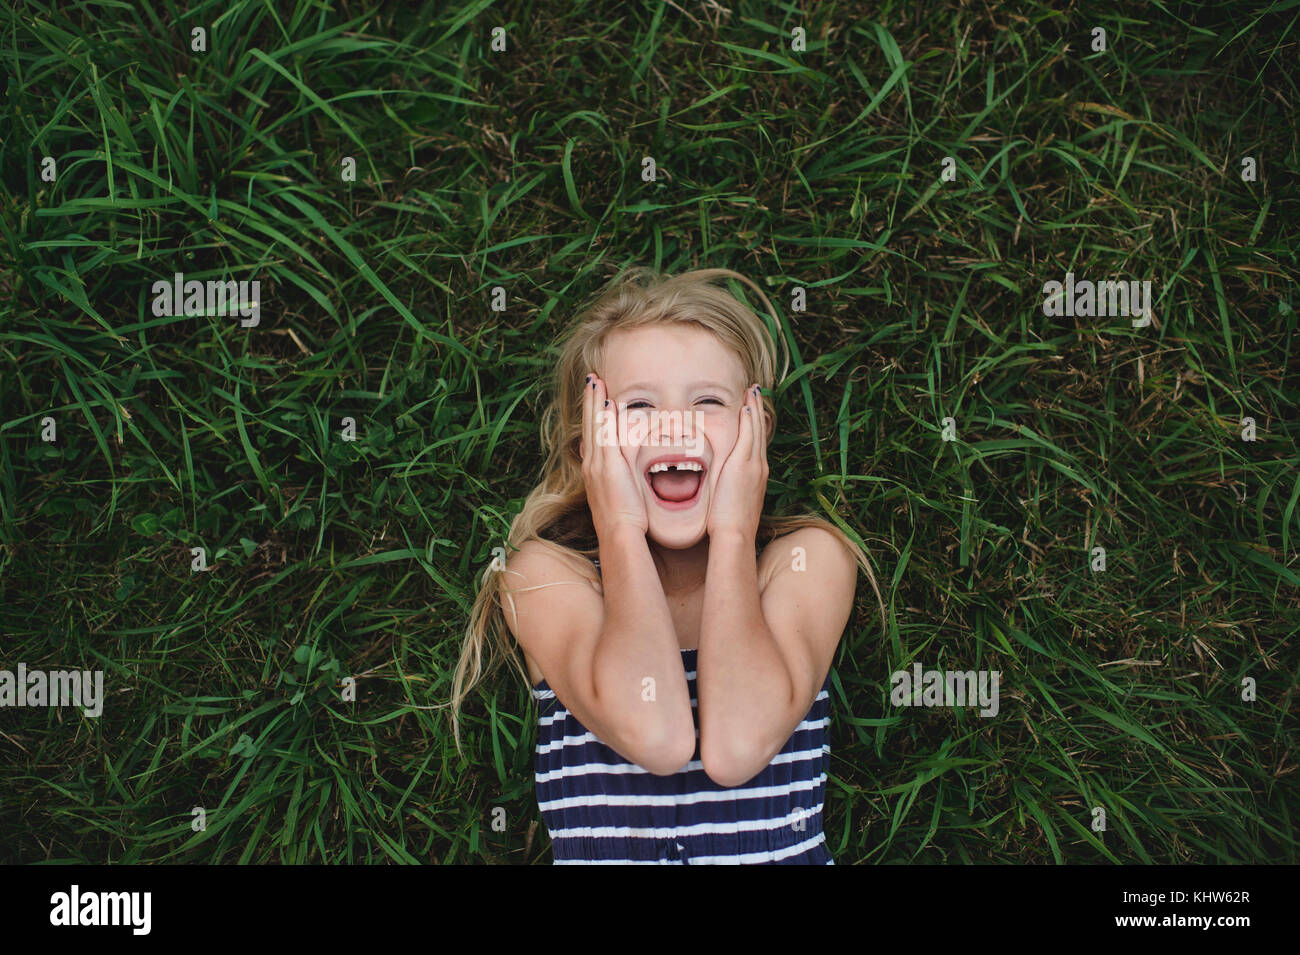 Overhead portrait of girl lying on grass with hands on her cheeks - Stock Image